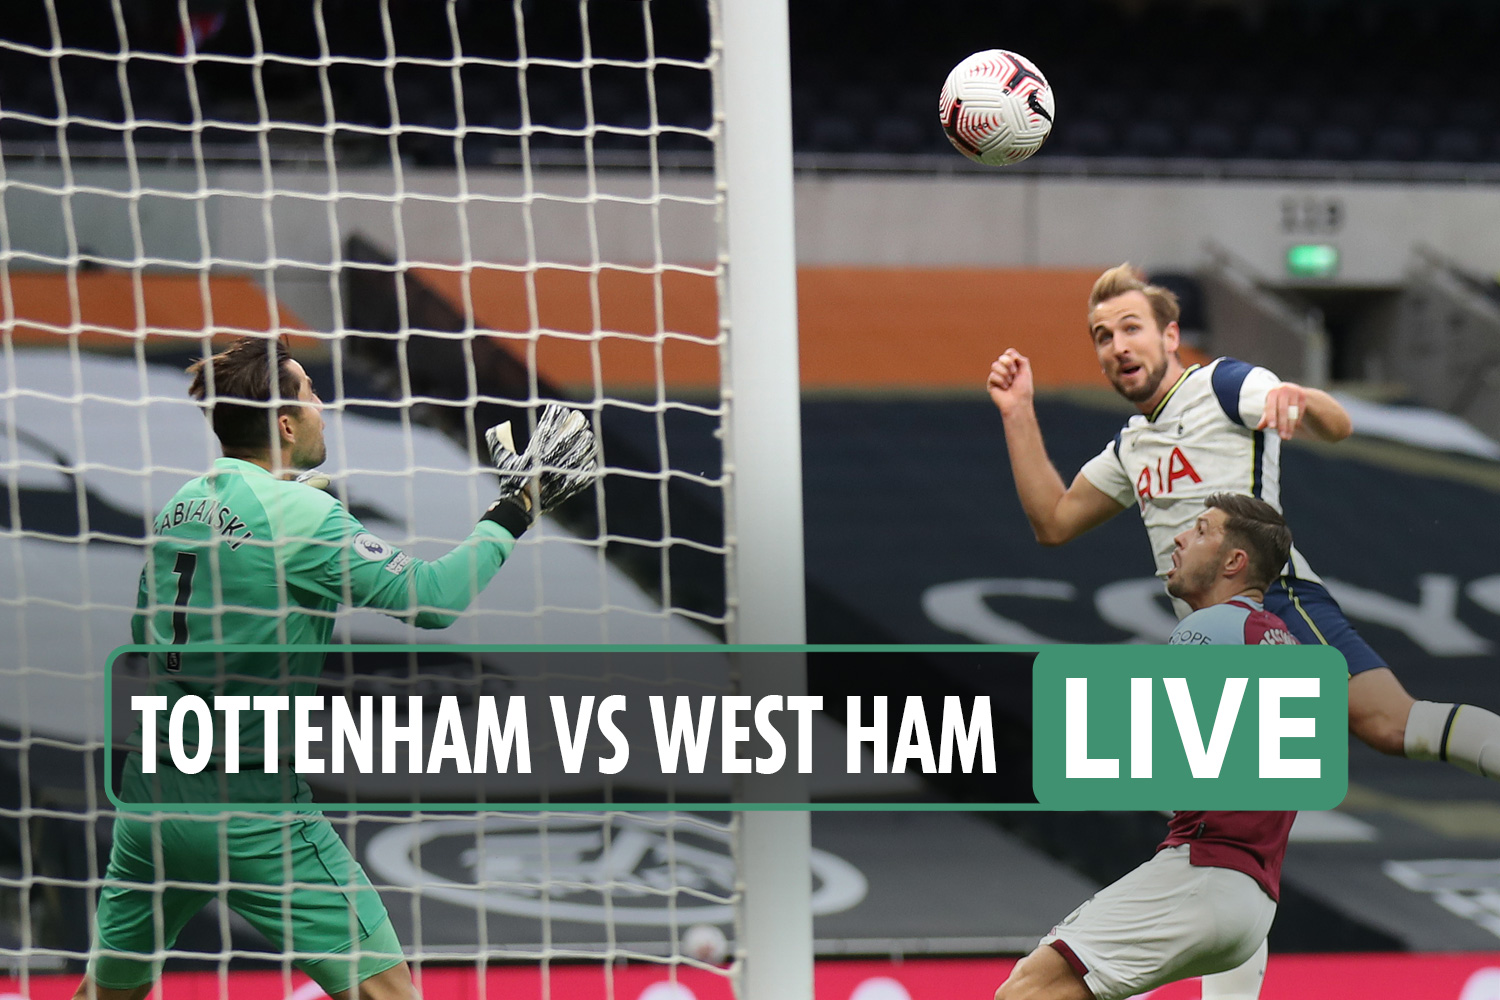 Tottenham vs West Ham LIVE: Stream, TV channel, score – Bale ON as West Ham fight back from 3-0 down